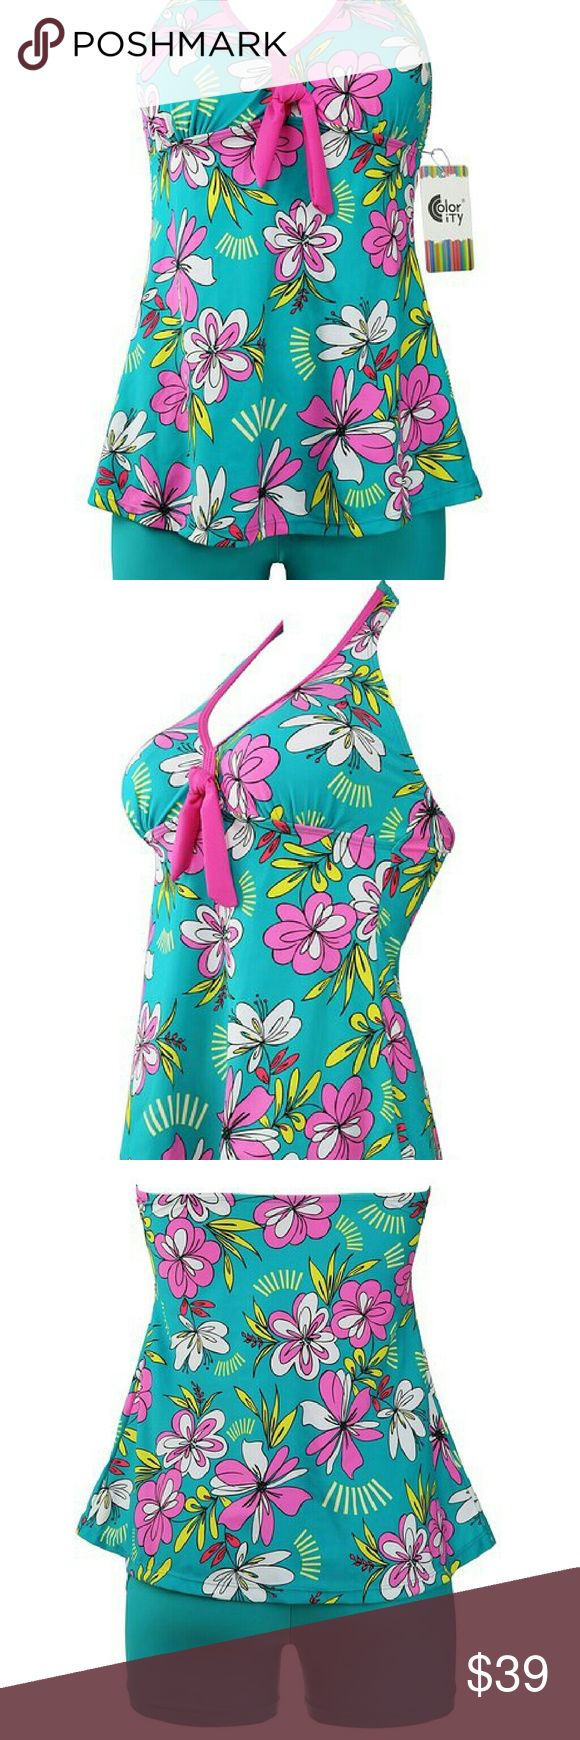 Plus Size Two Pieces Floral Tankini Top & Bottom Women's Plus Size Two Pieces Floral Tankini Top & Bottom Swimsuit Available in Womens 12, 14, 16, & 18. Swim